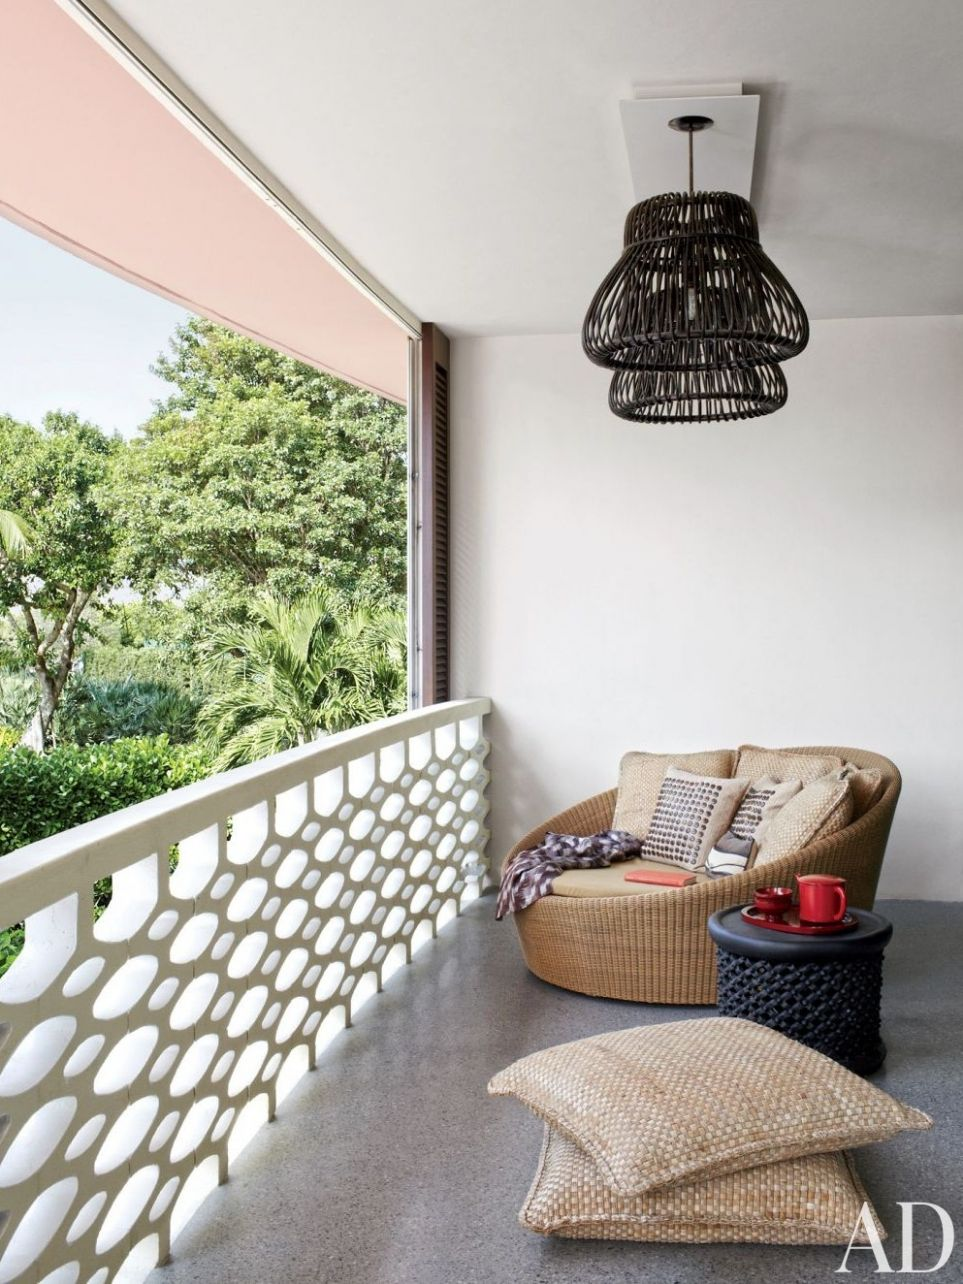 12 Cozy Balcony Ideas and Decor Inspiration   Architectural Digest